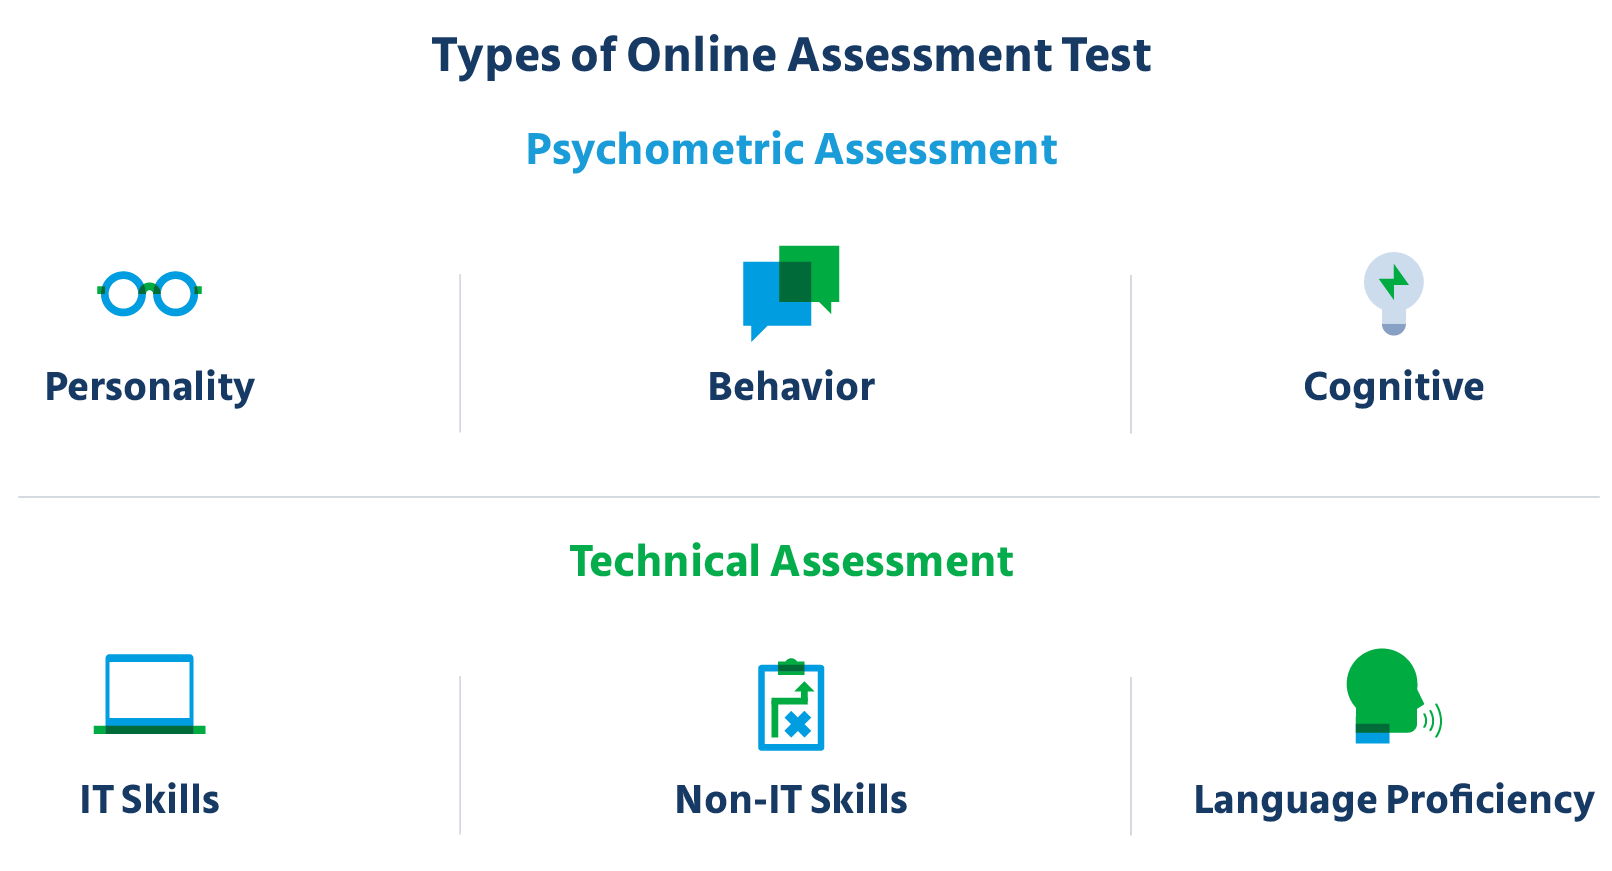 Types_of_Onilne_Assessment_Test